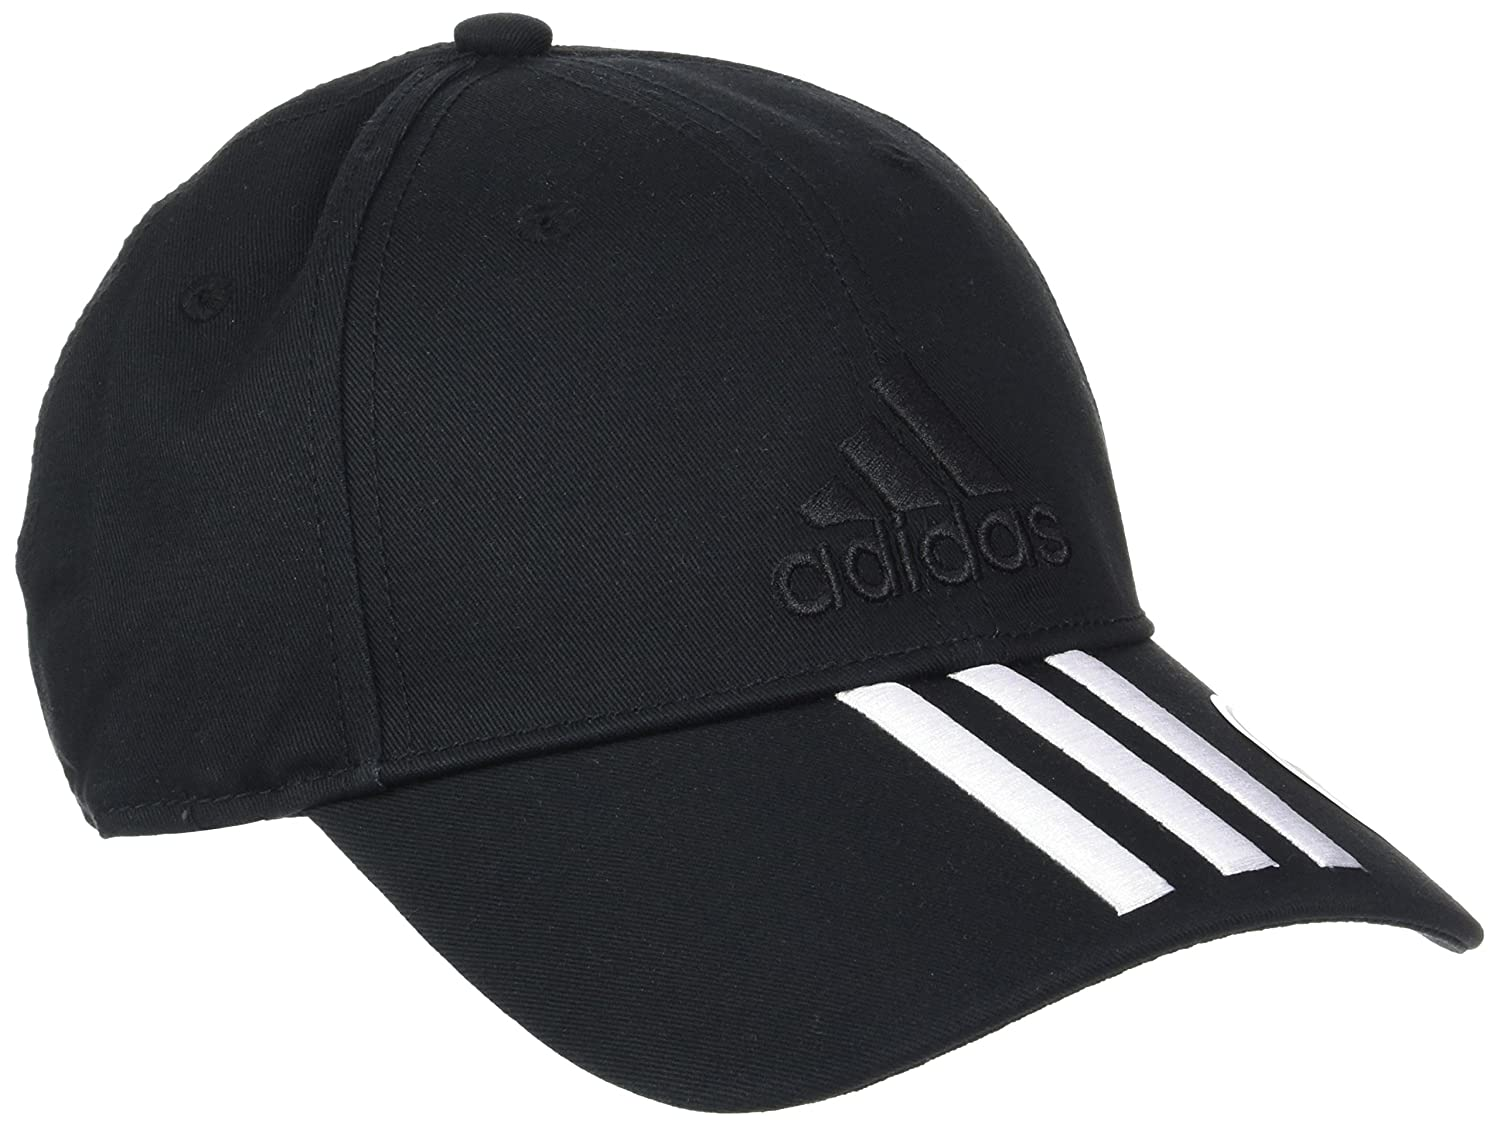 adidas Kid's Six-Panel Classic 3-Stripes Cap, Black/White, One Size S98156